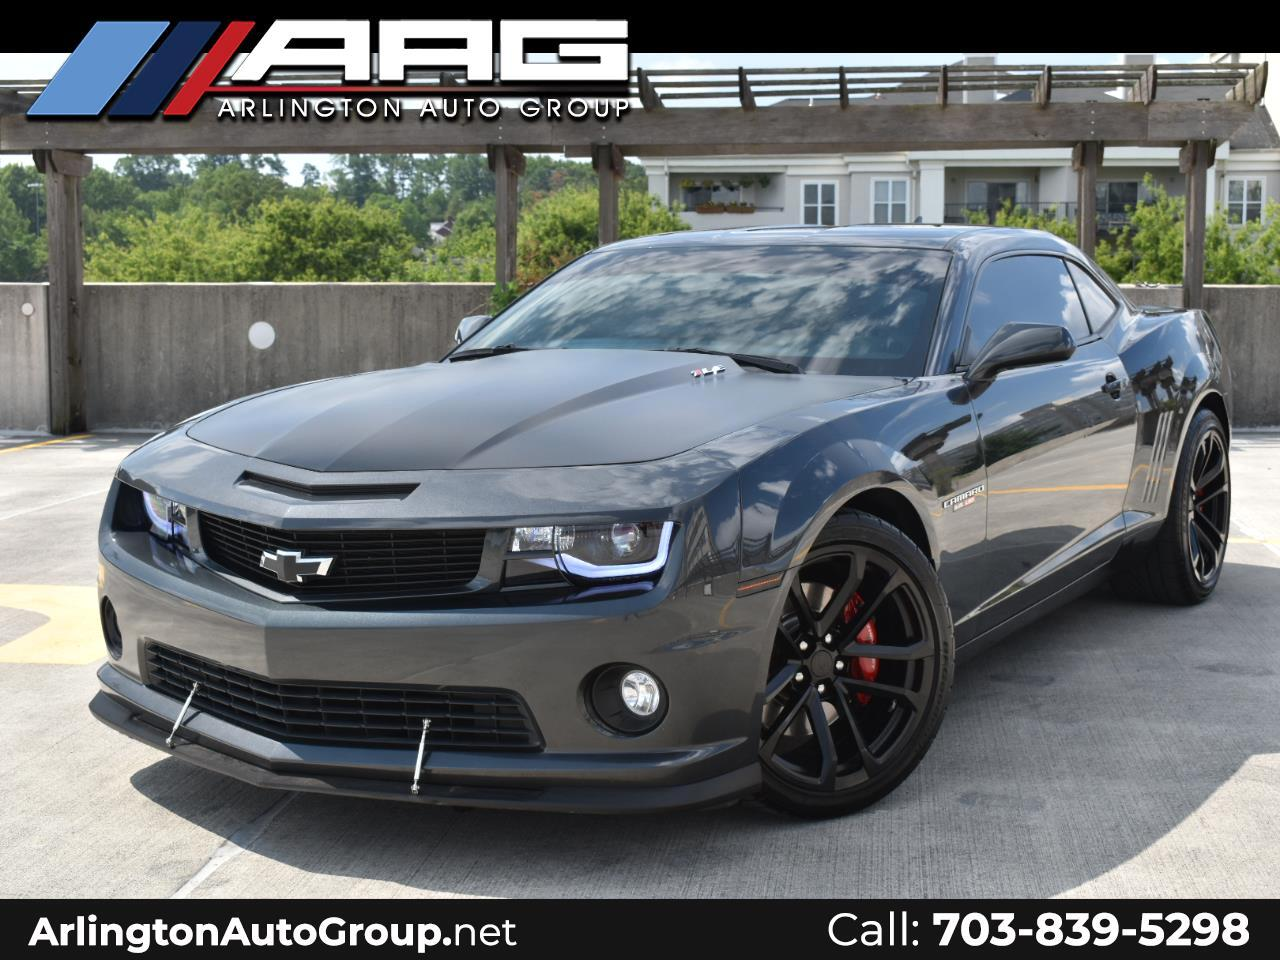 Chevrolet Camaro 2dr Cpe SS w/1SS 2013